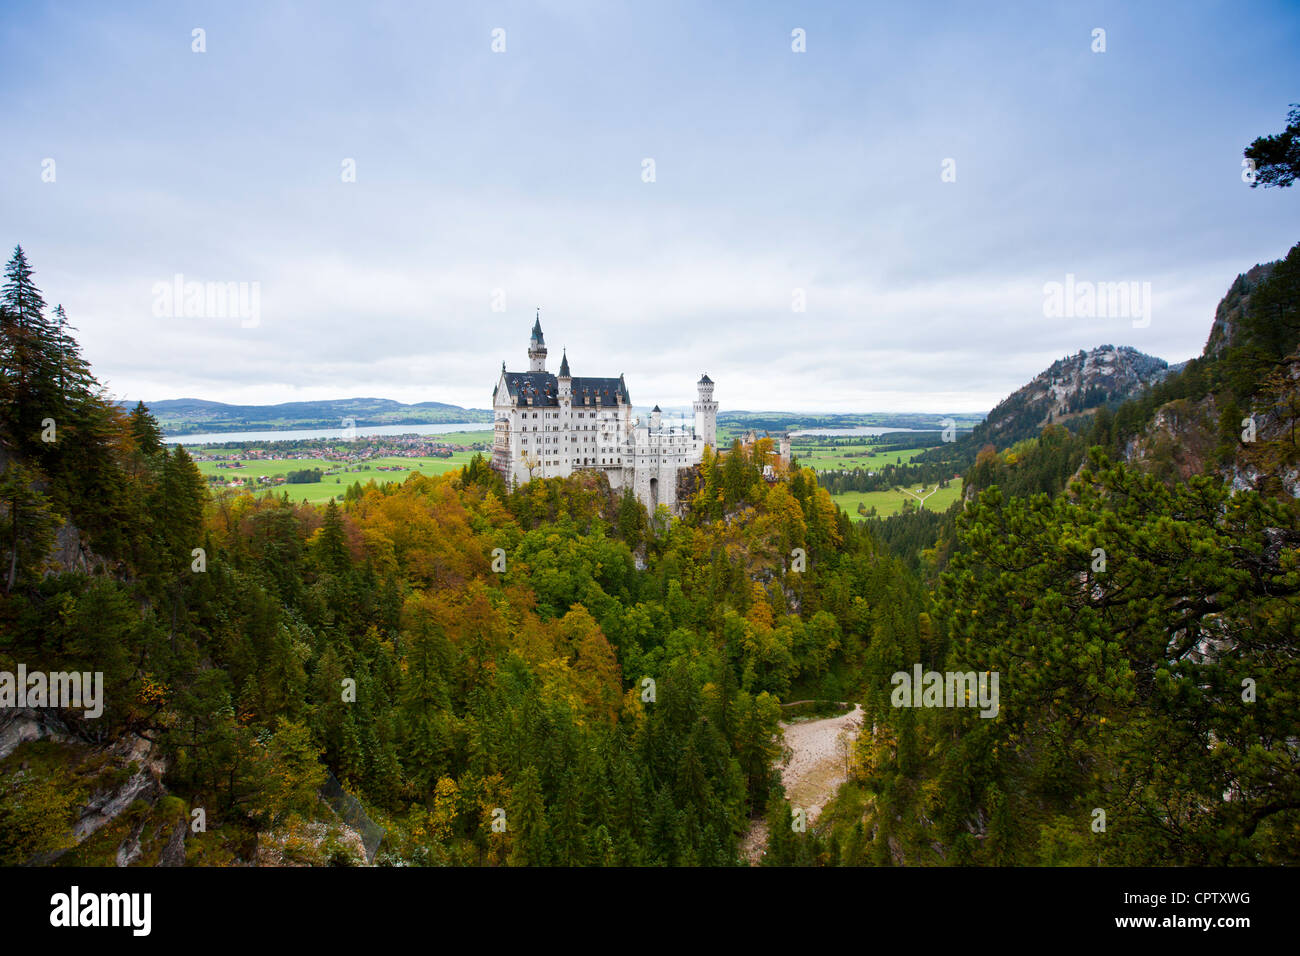 Schloss Neuschwanstein castle, 19th Century Romanesque revival palace of Ludwig II of Bavaria in the Bavarian Alps, - Stock Image